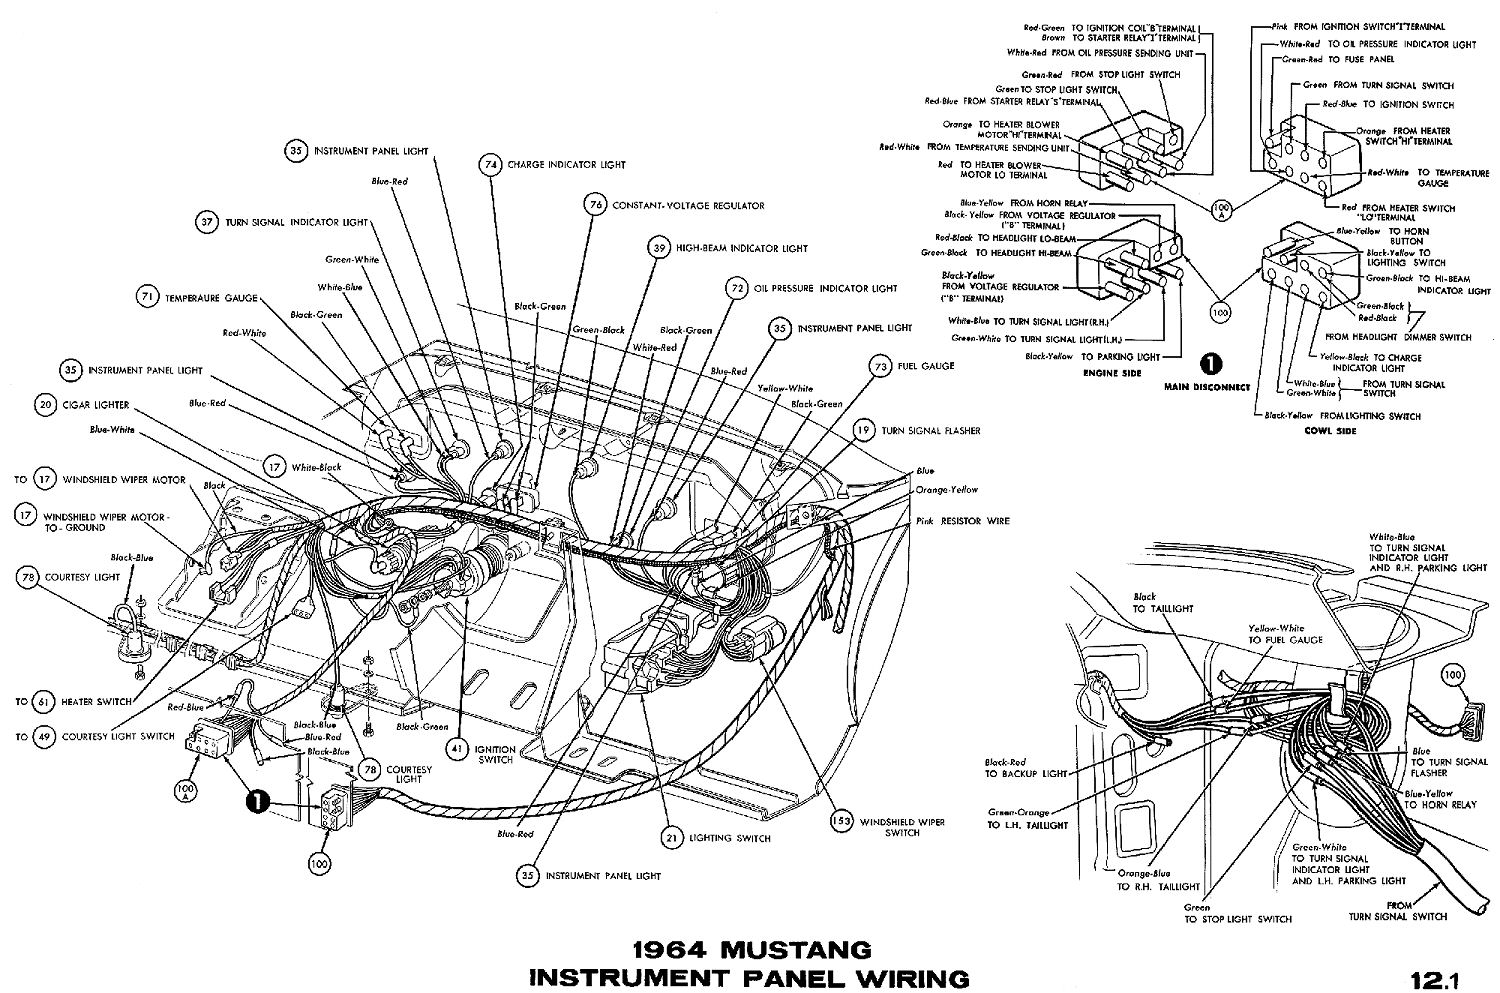 1976 corvette dash wiring diagram sony xplod 1964 cluster schematic mustang diagrams average joe restoration electrical instrument connections